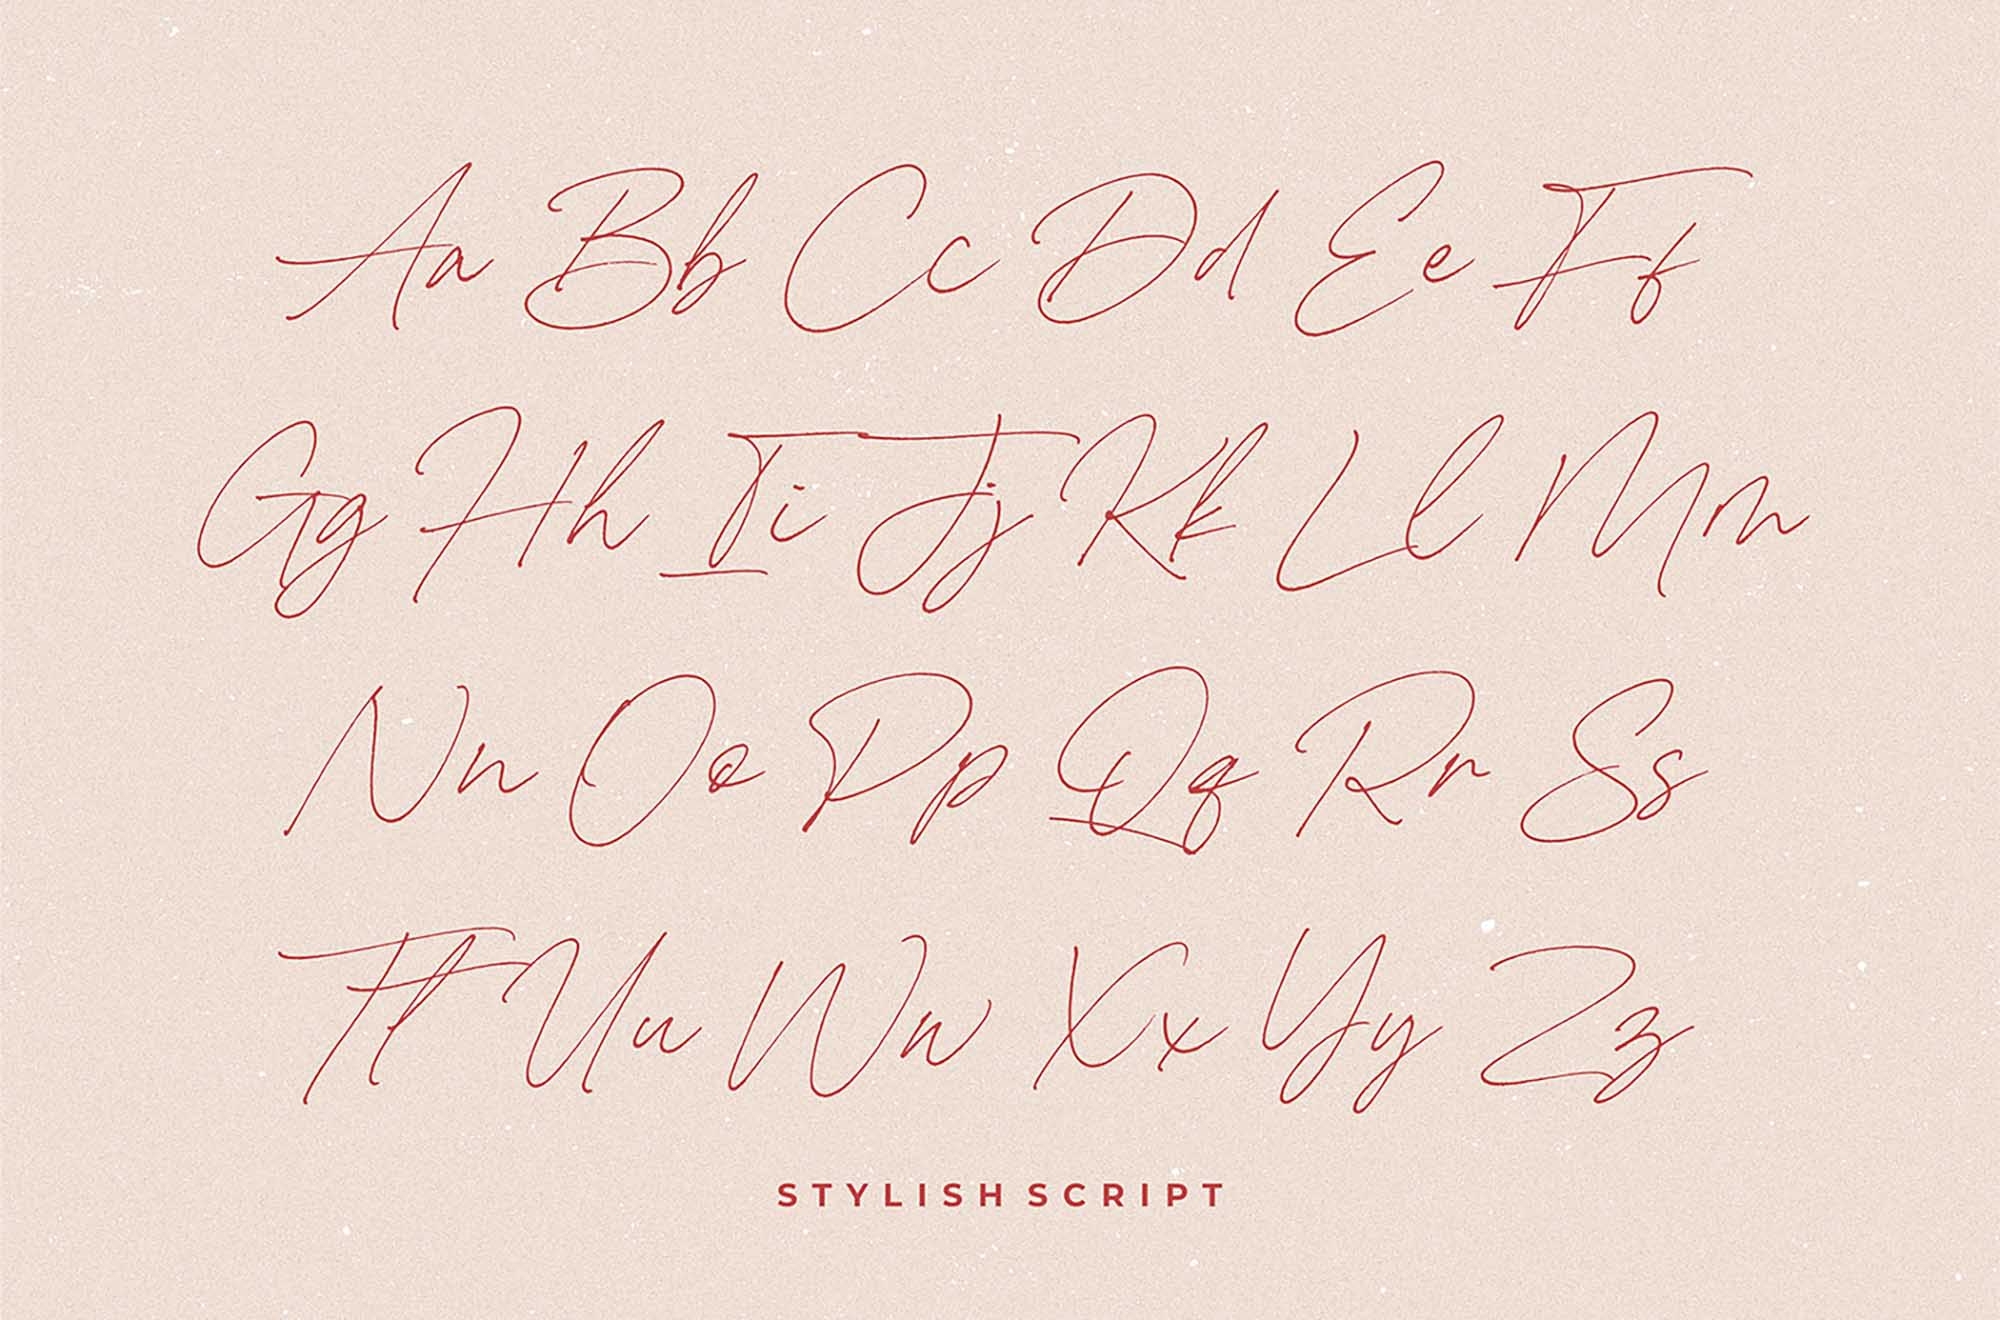 Carneys Gallery Font 10